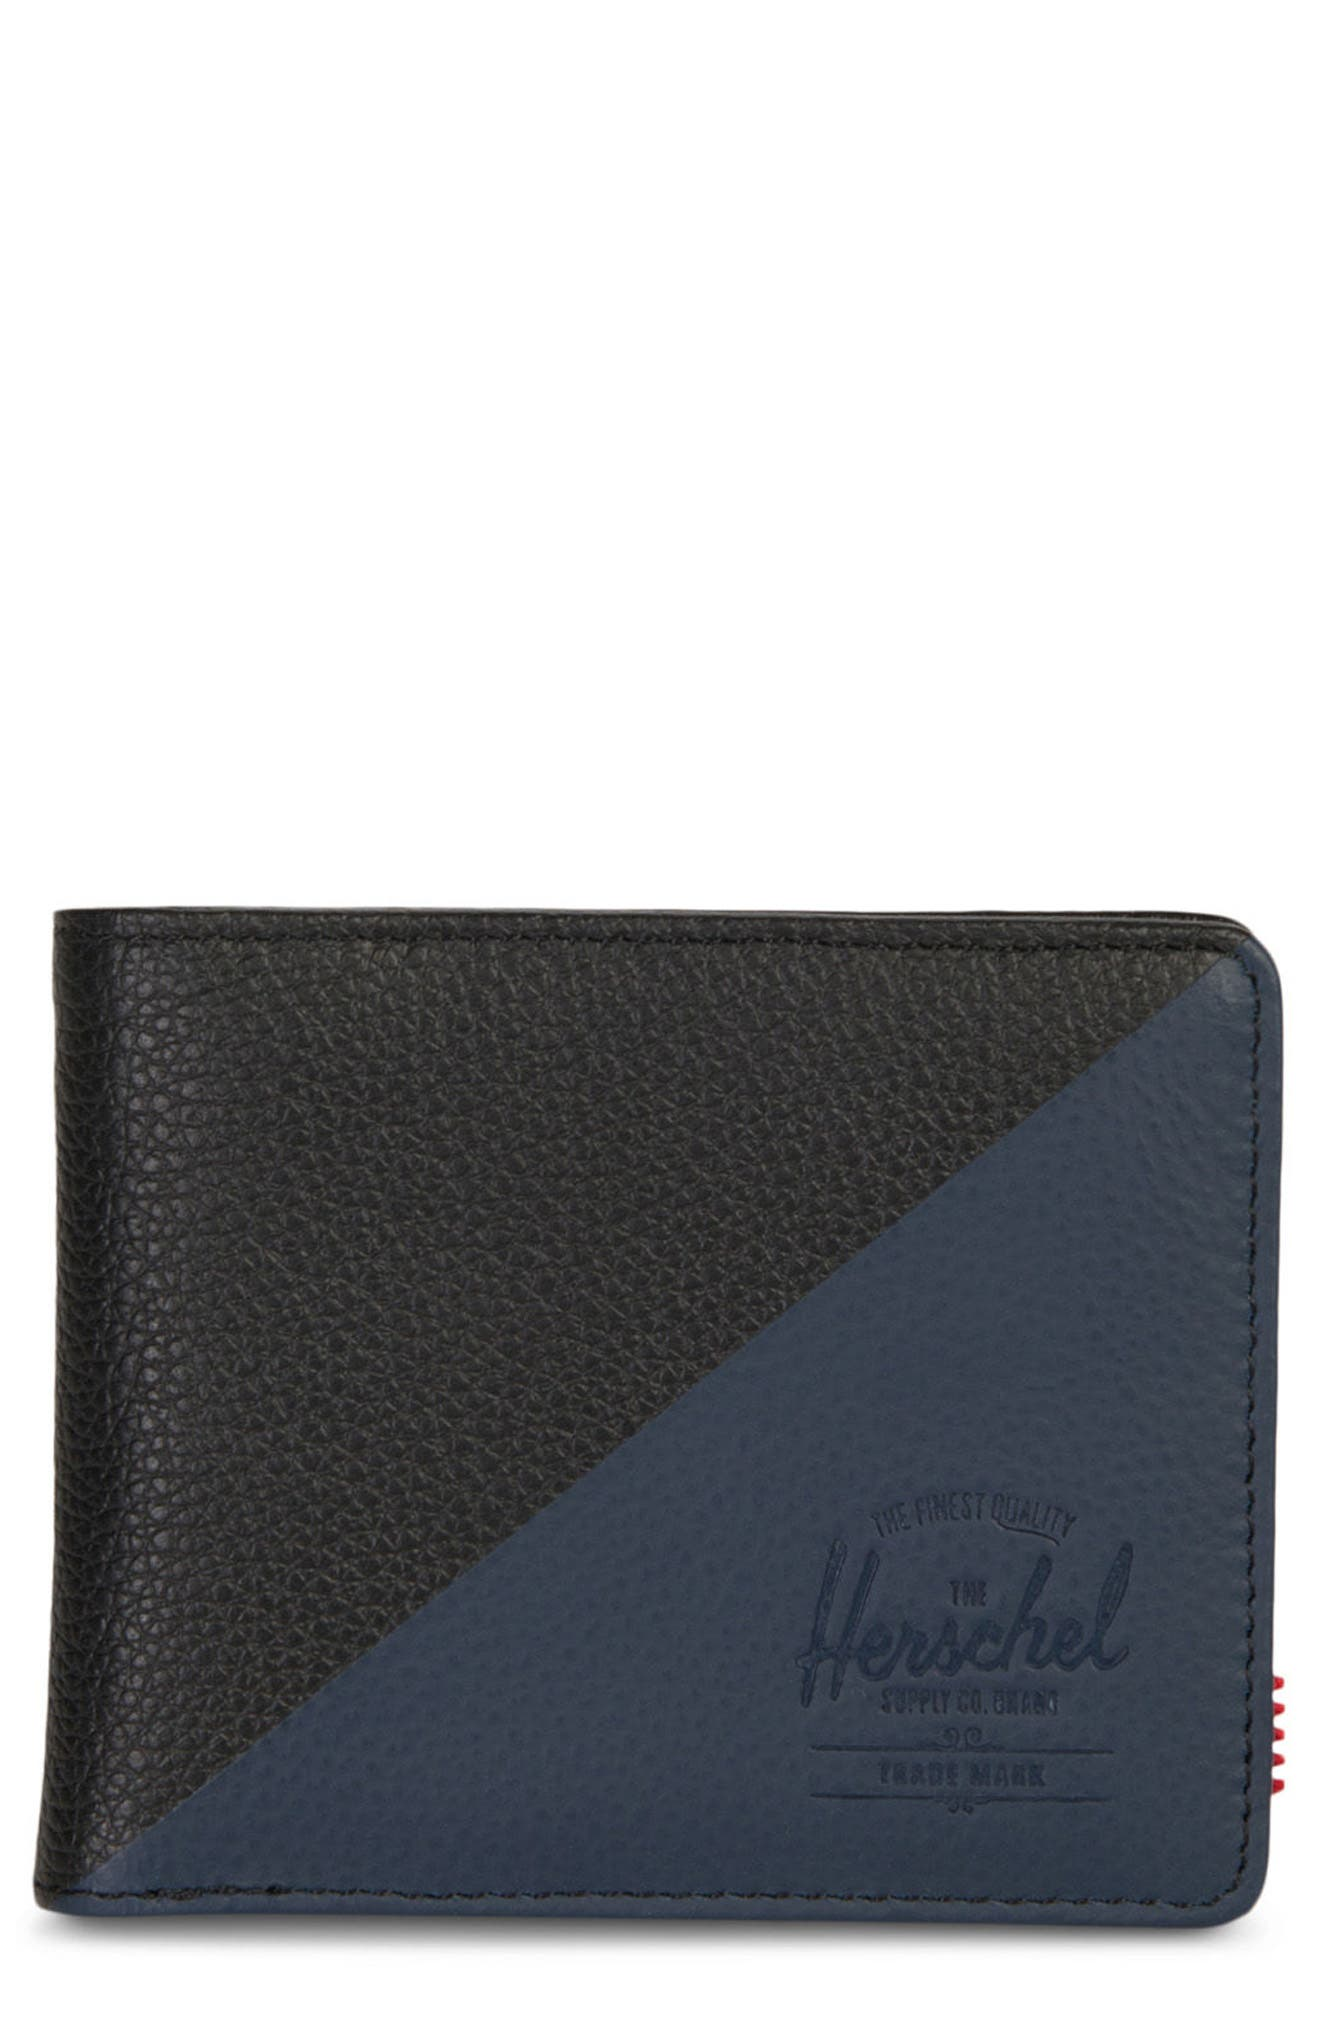 Hank Leather Wallet,                         Main,                         color, 001